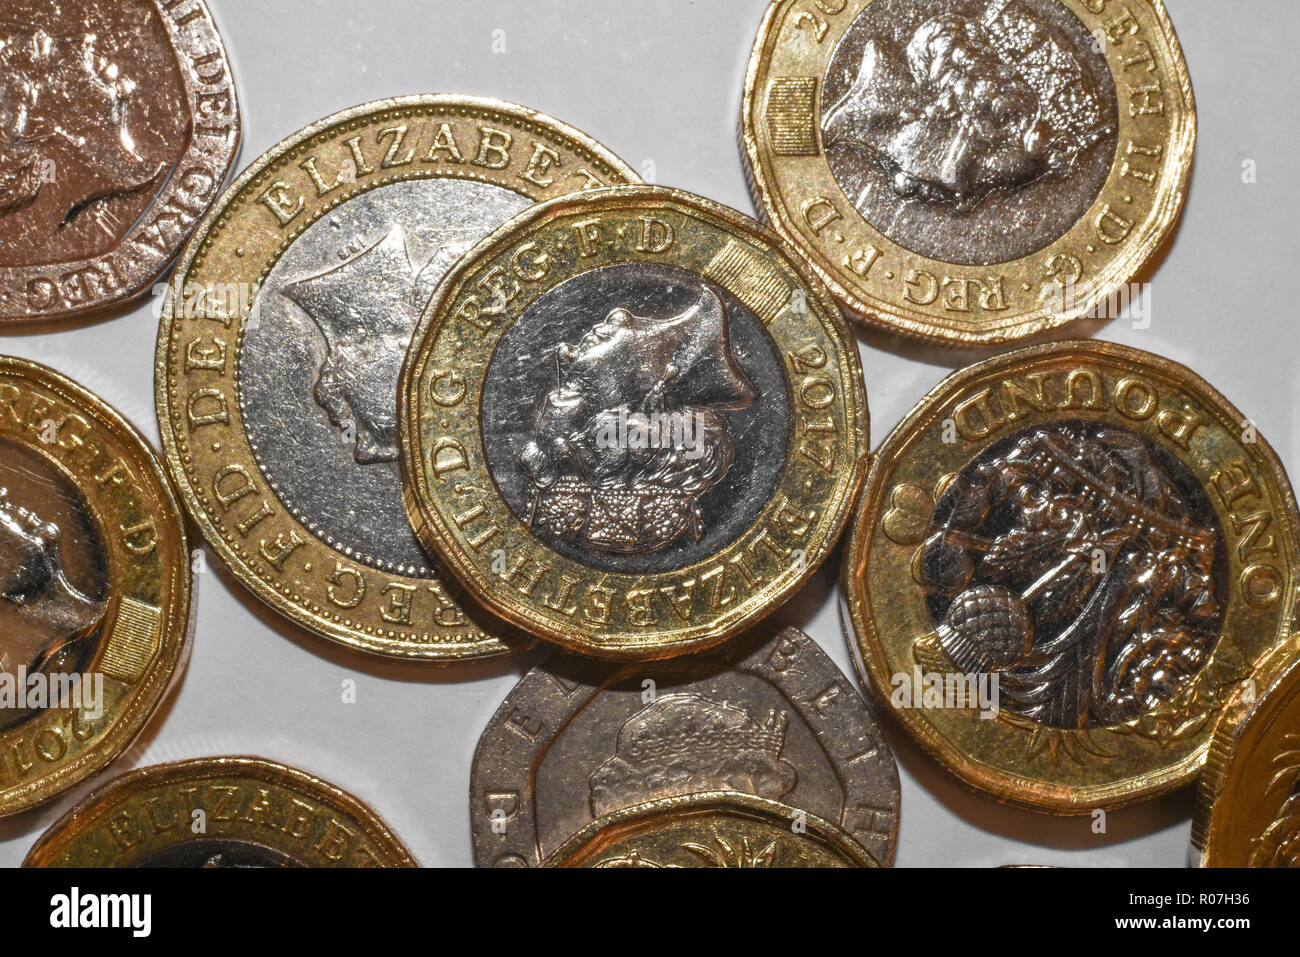 coins from the UK - Stock Image